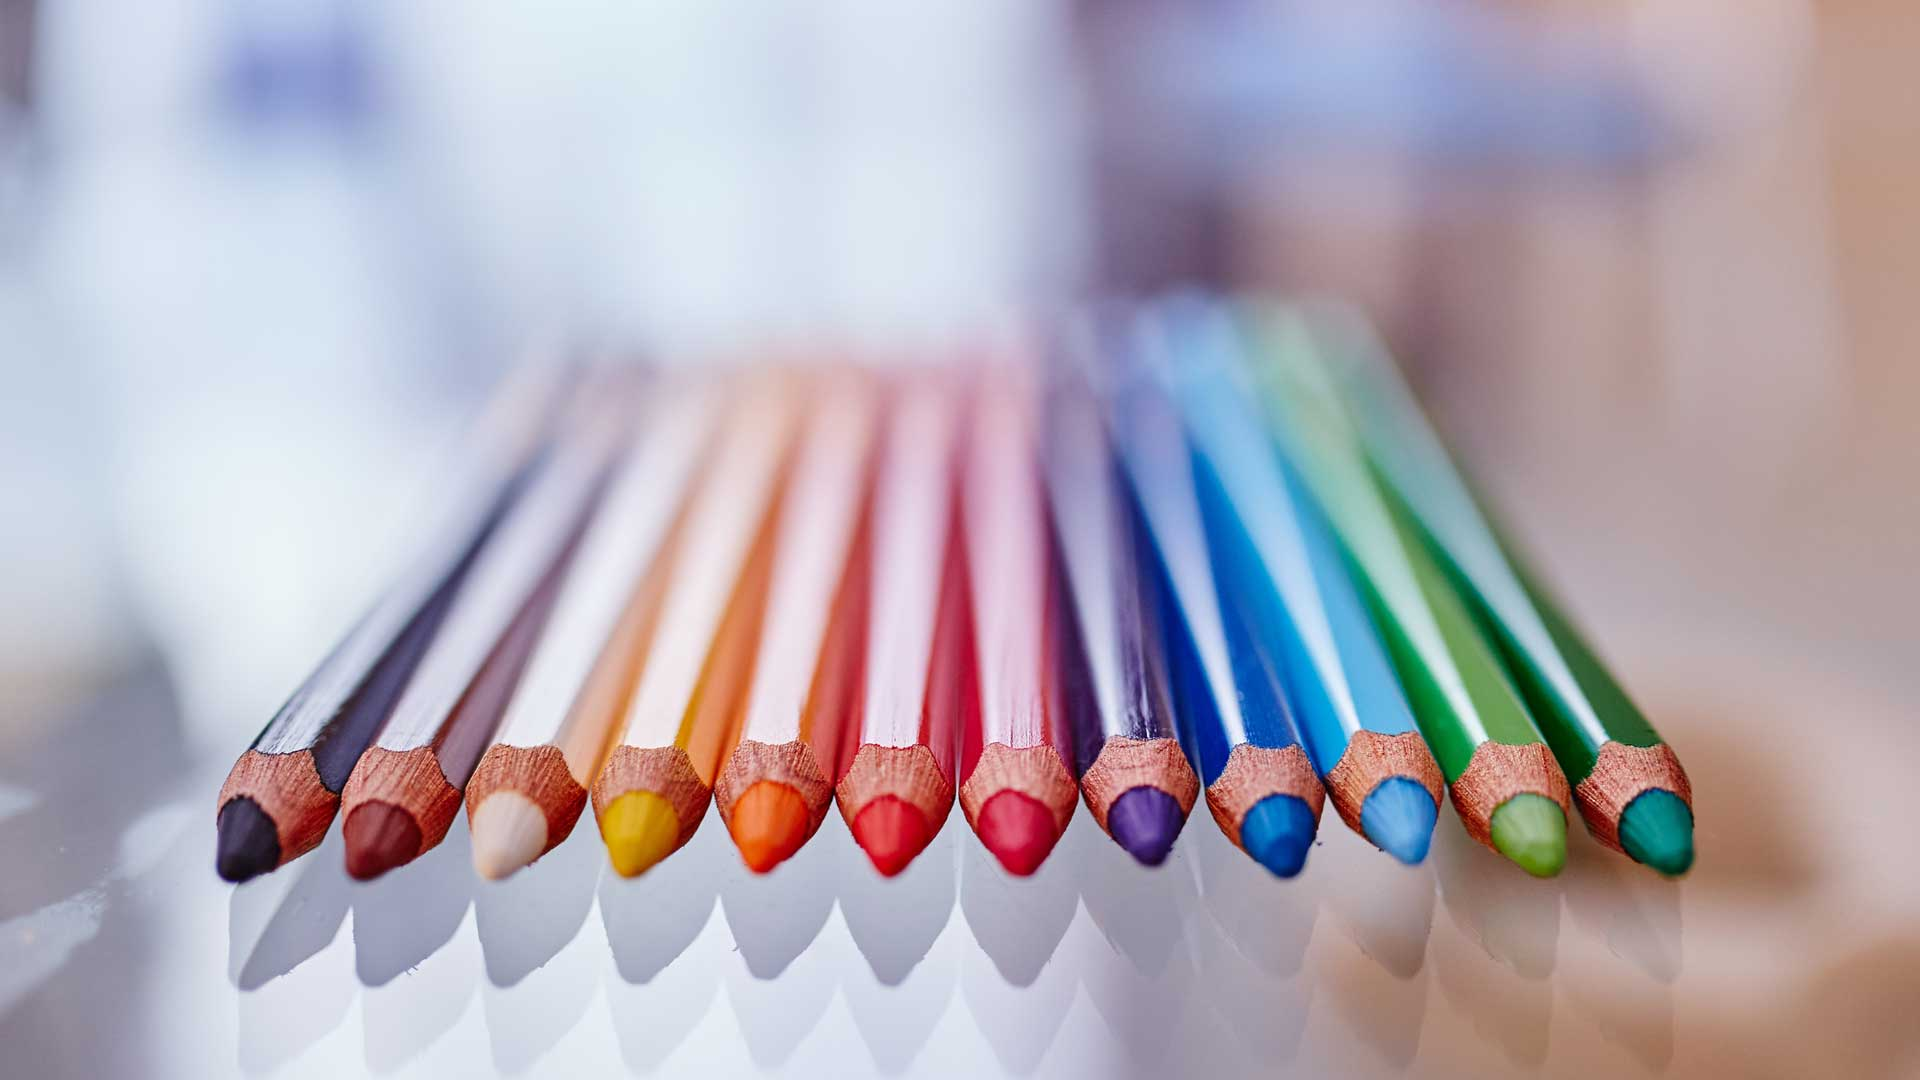 Color Theory & Psychology